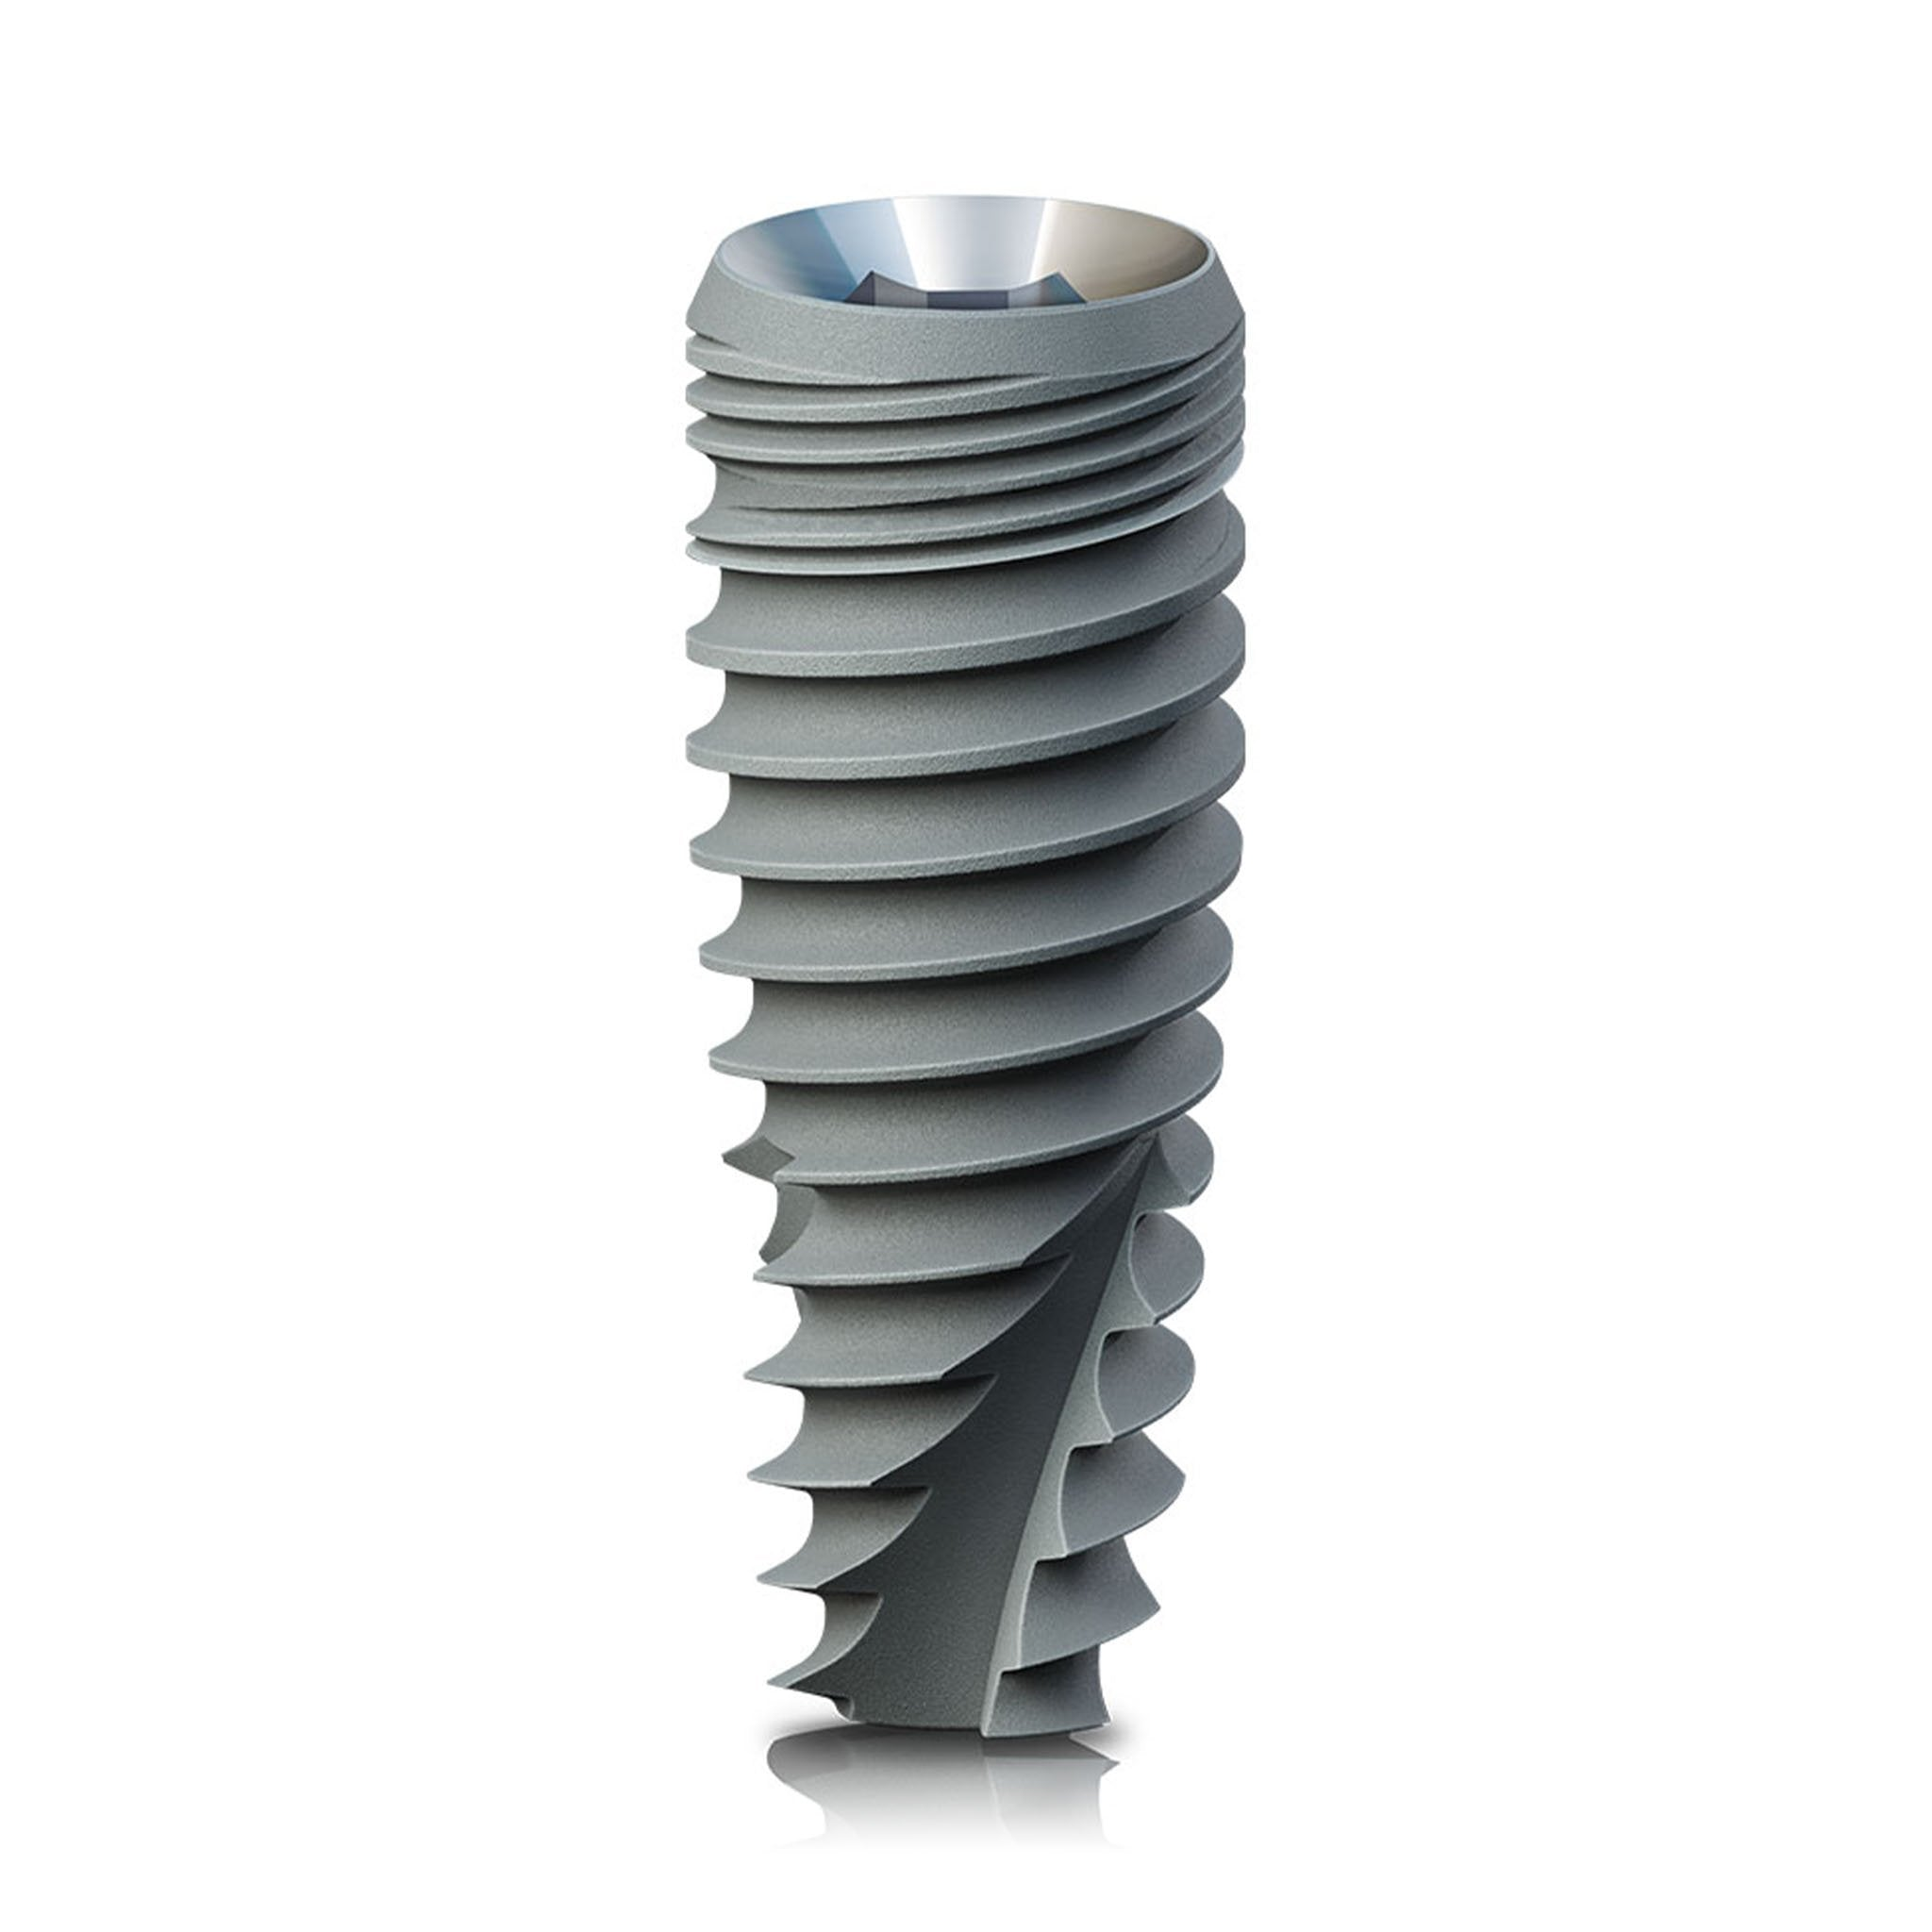 Dynamic Implant SP Ø 4.2 x 11.5mm | K3